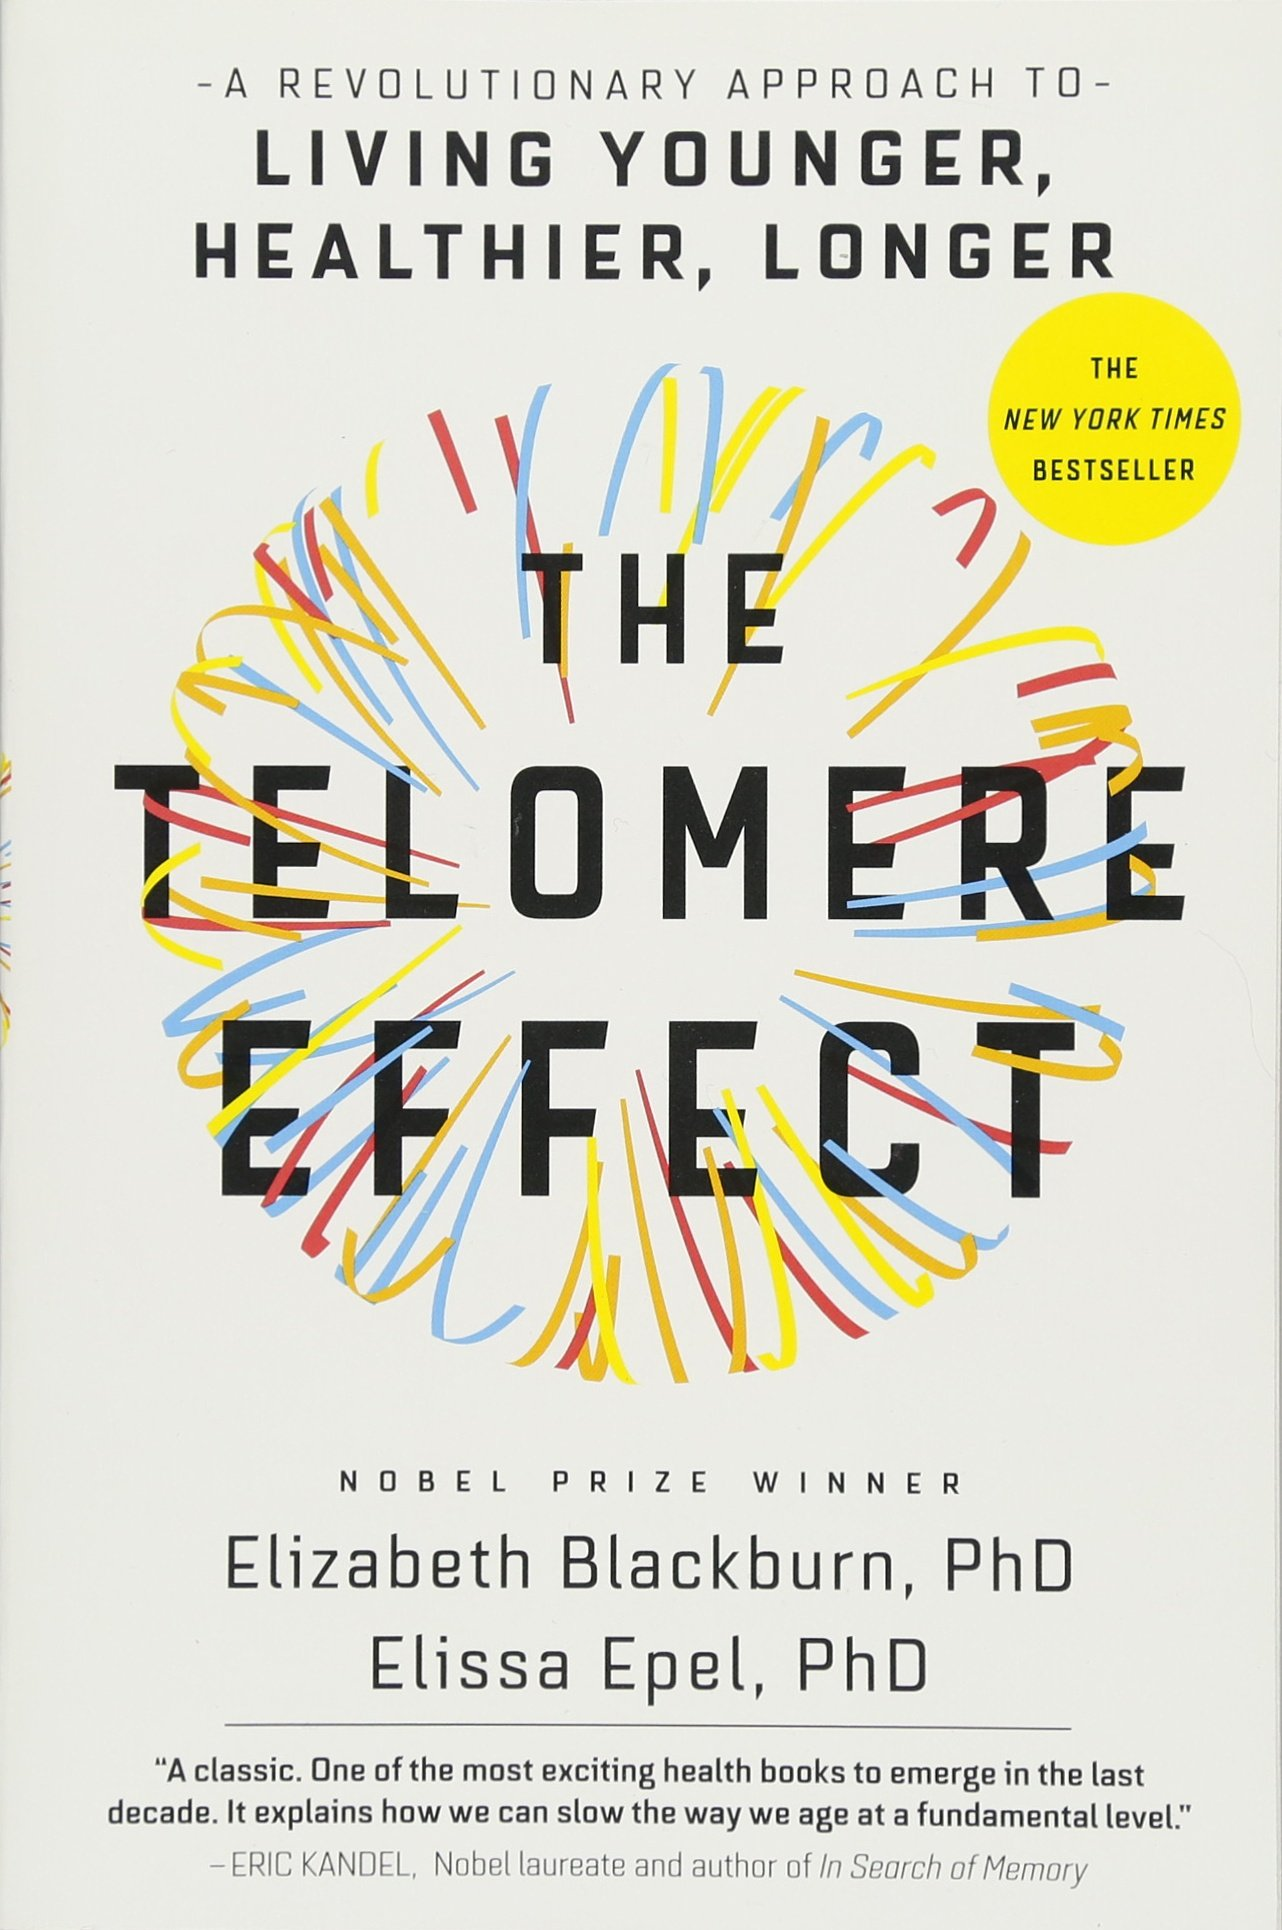 Download The Telomere Effect: A Revolutionary Approach to Living Younger, Healthier, Longer ebook